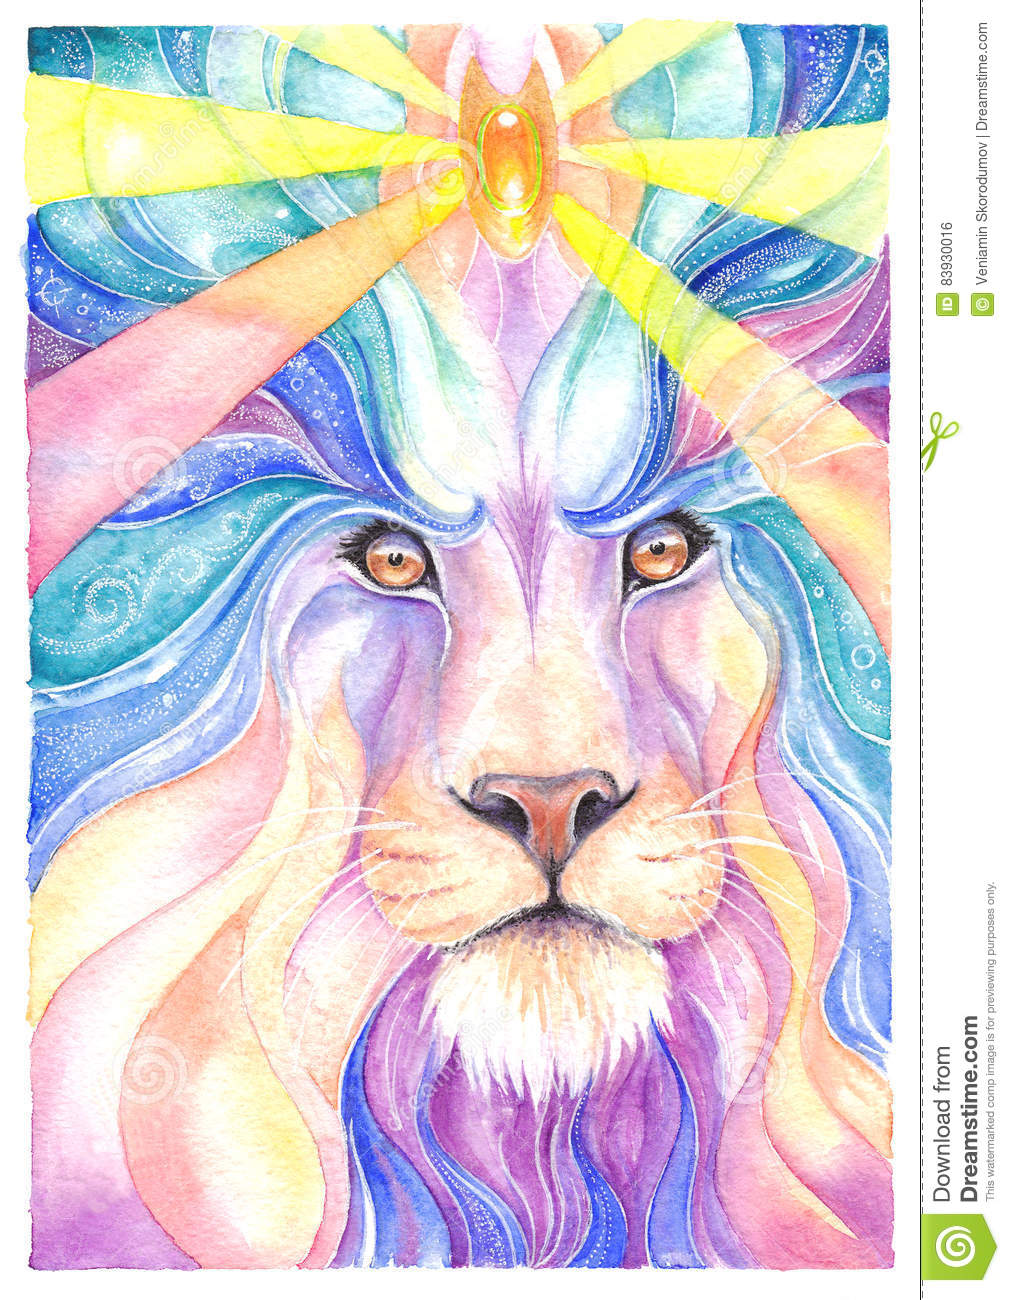 Lion drawing watercolor and colored pencil